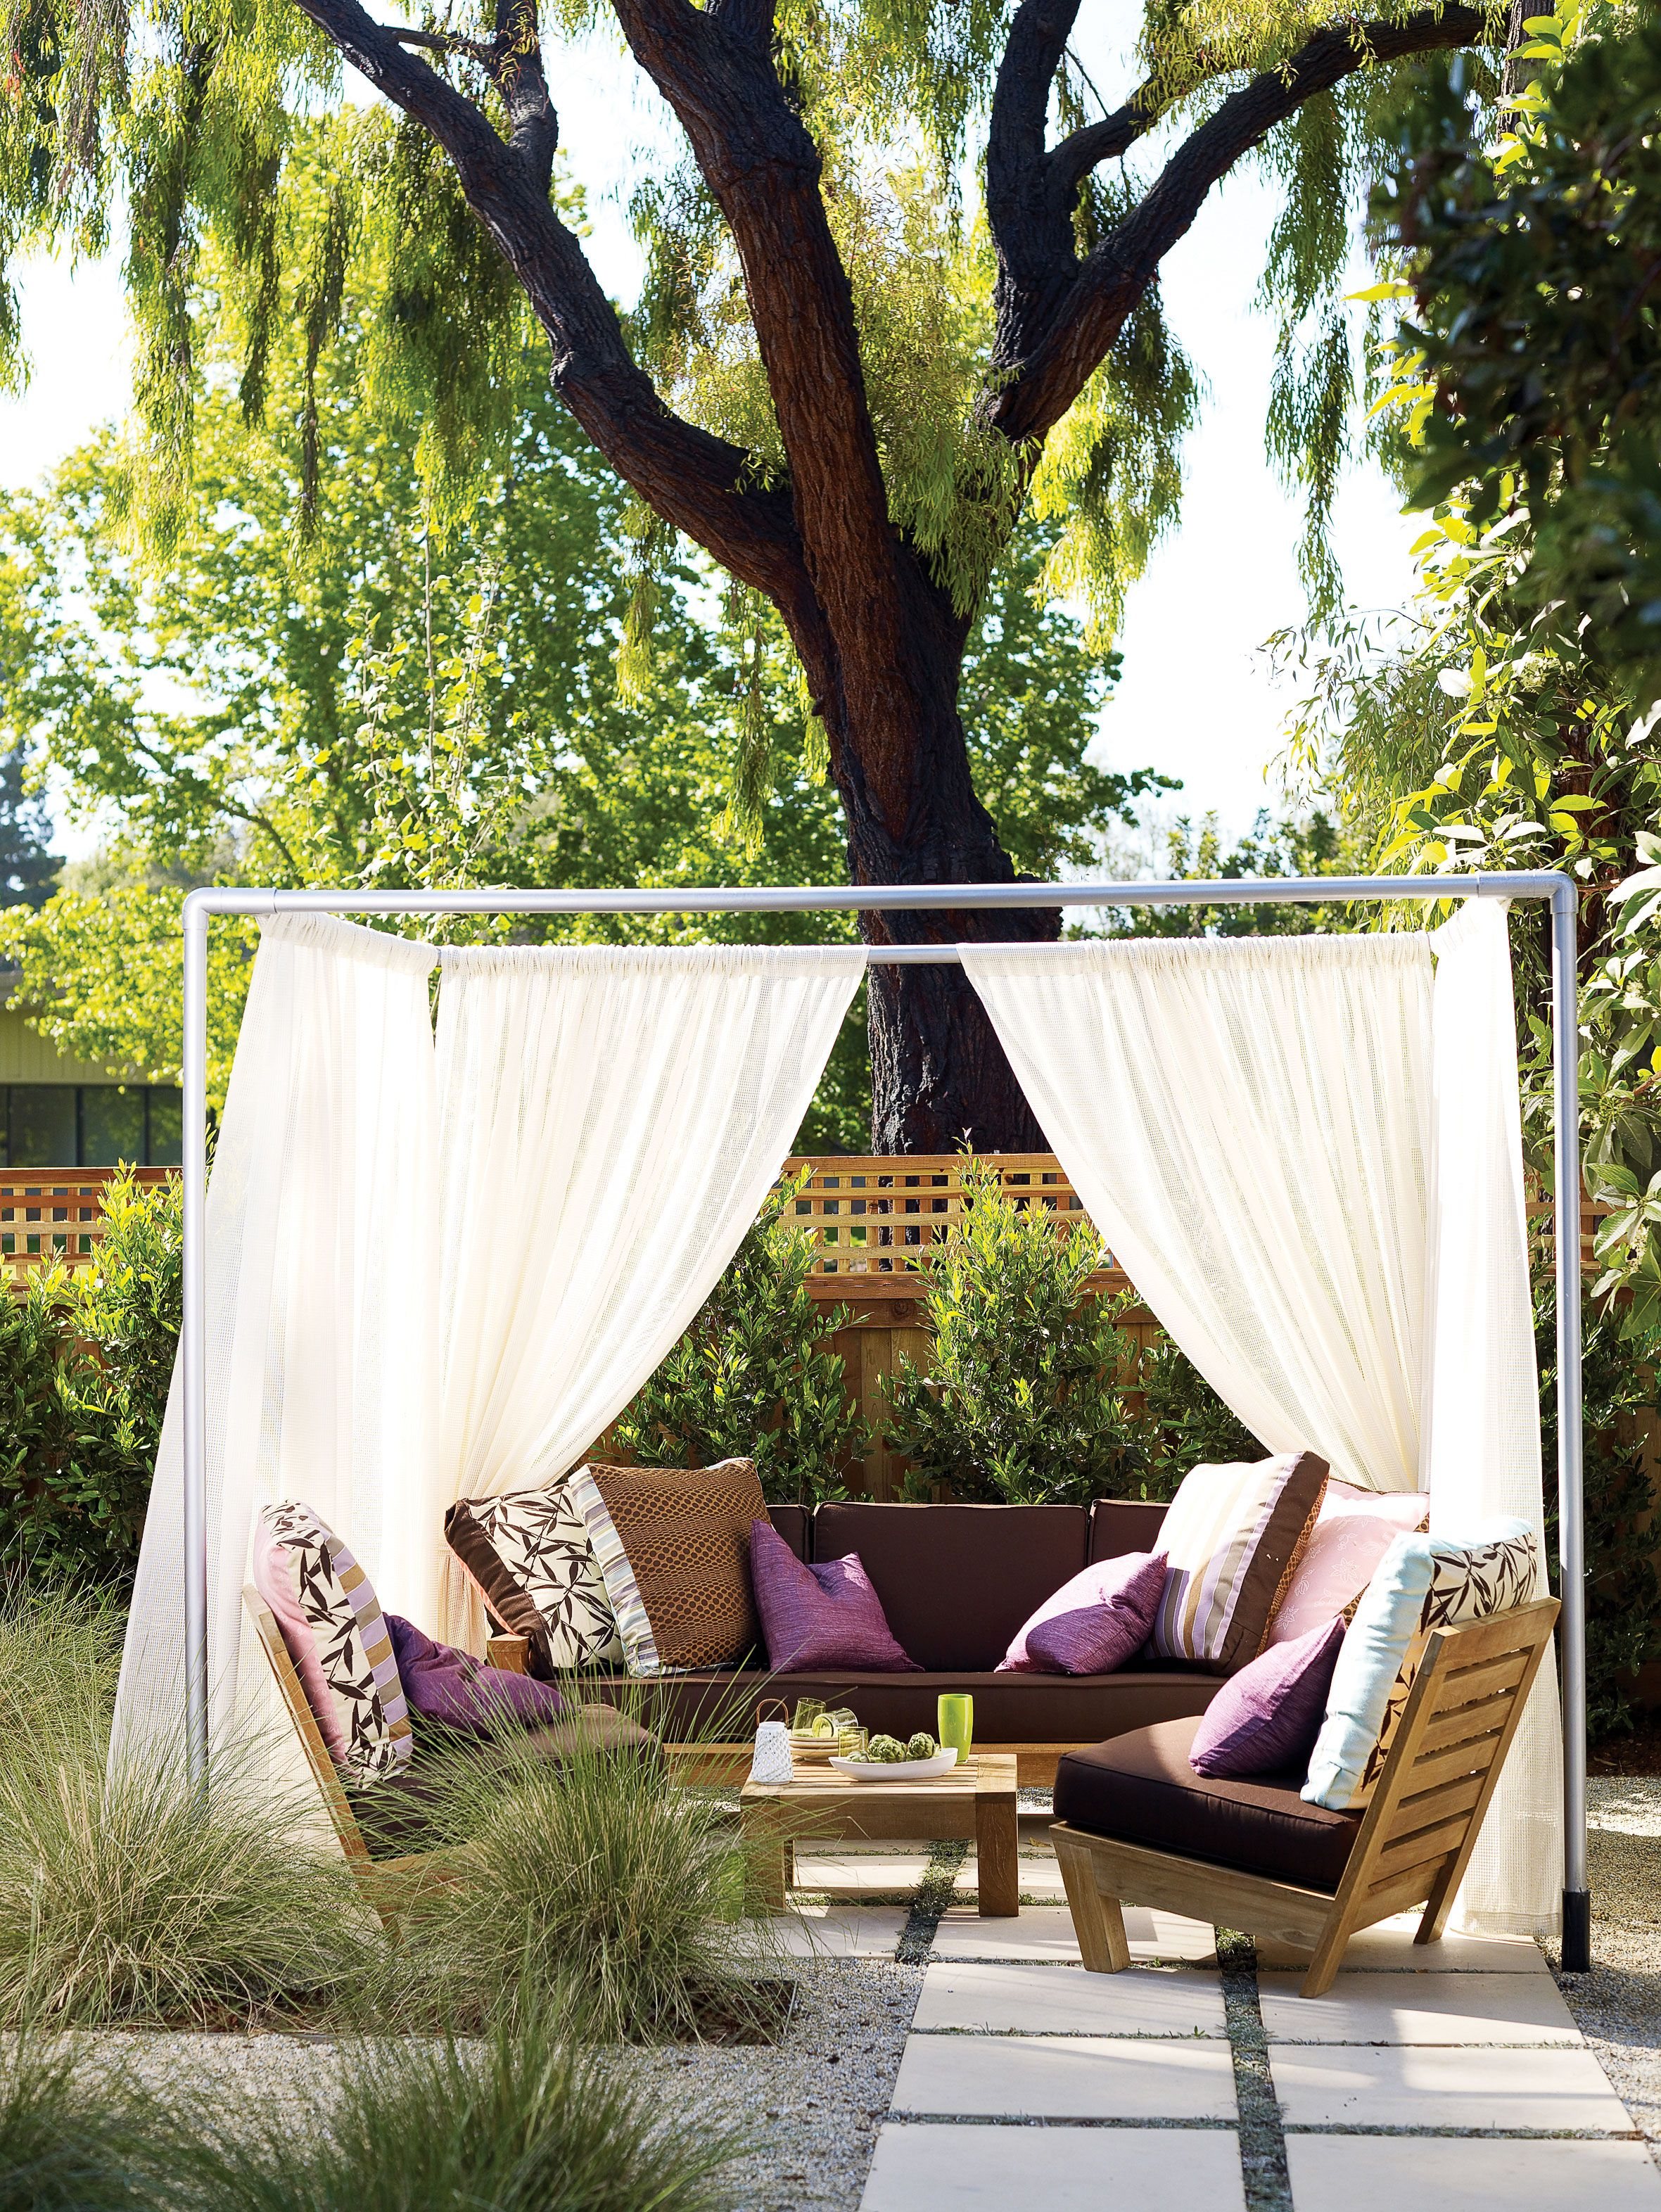 Diy Cabana Curtains Step By Step Diy Cabana Outdoor Patio Curtains